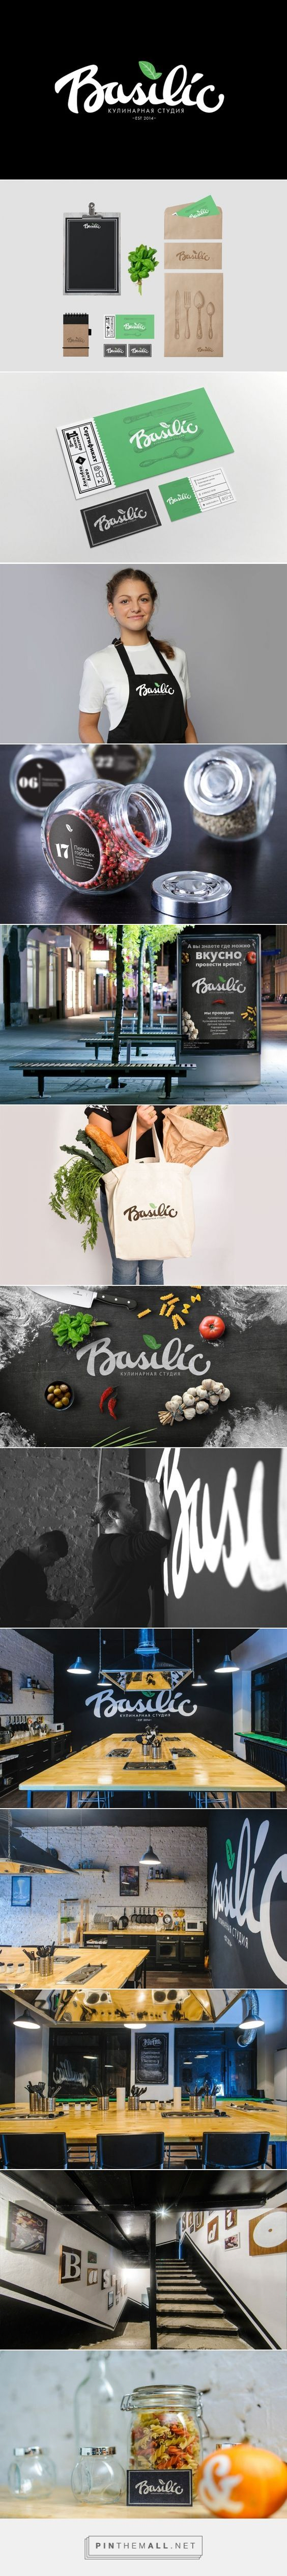 Basilic Branding by Stepan Solodkov | Fivestar Branding – Design and Branding Agency & Inspiration Gallery